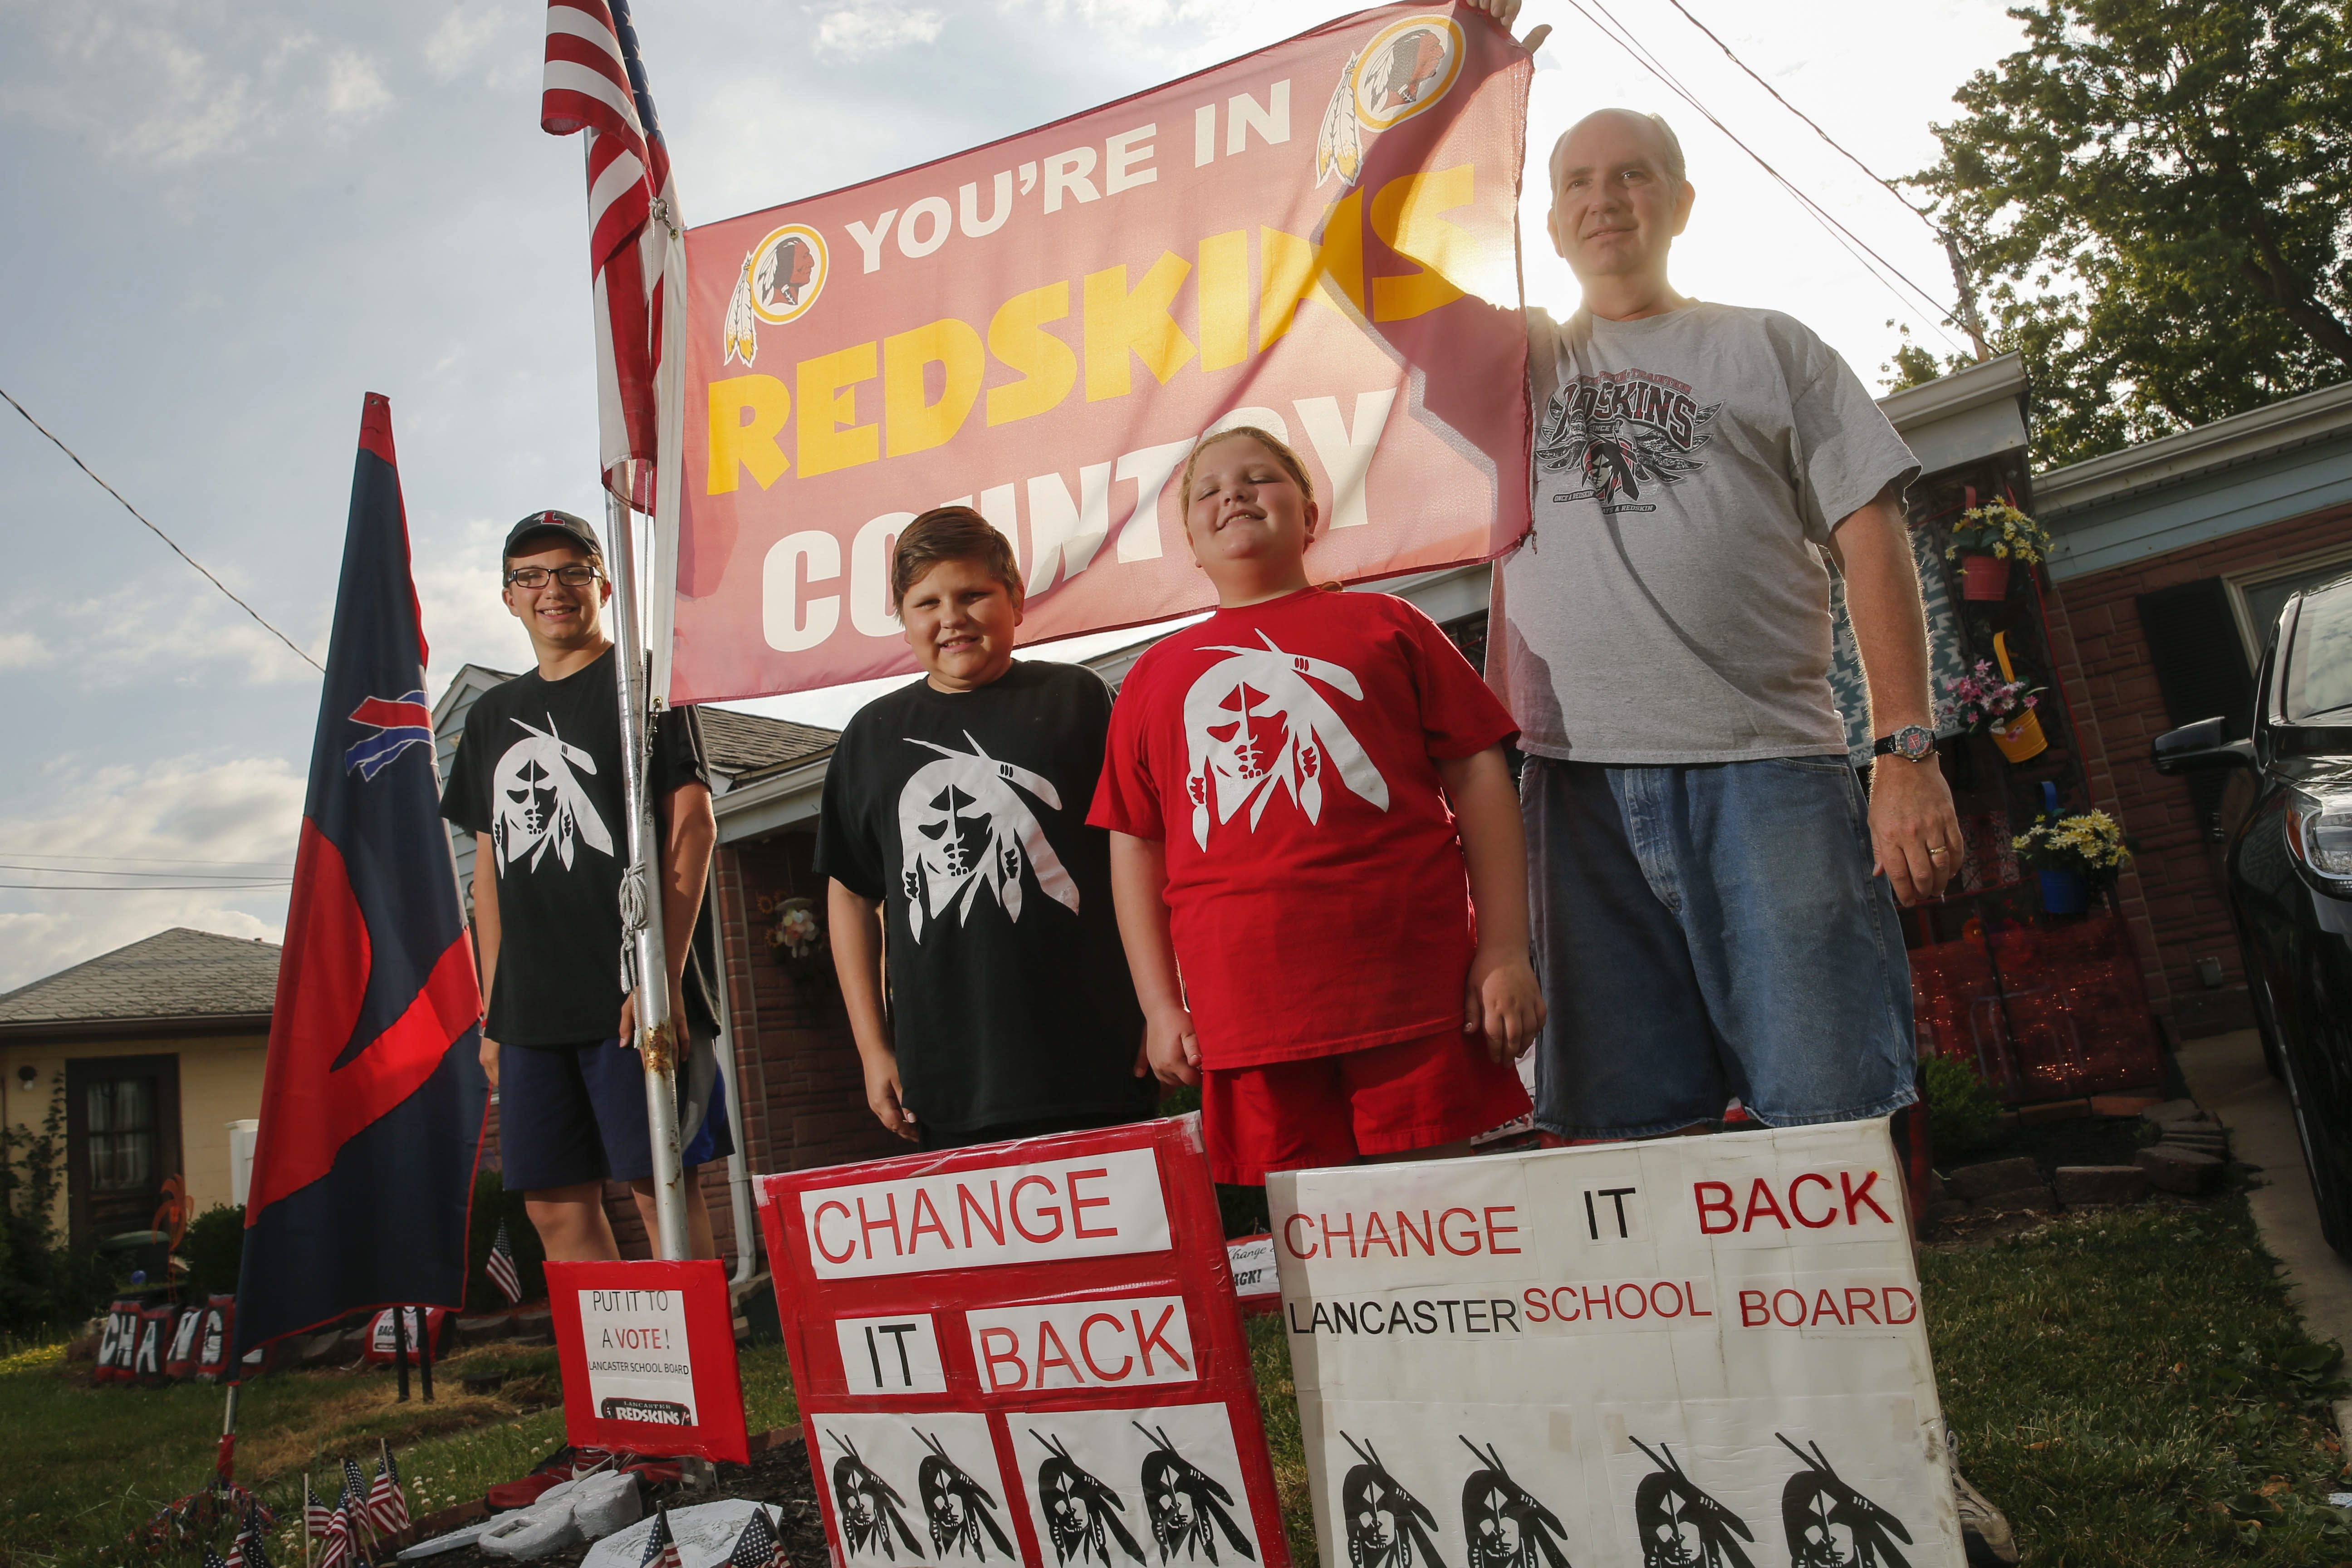 Dale Miller and his family, Dakota, 15, Blaze, 13, and Trinity, 11, want the Lancaster schools to return to the former mascot and have decorated their lawn in an effort to keep the issue alive. (Derek Gee/Buffalo News)